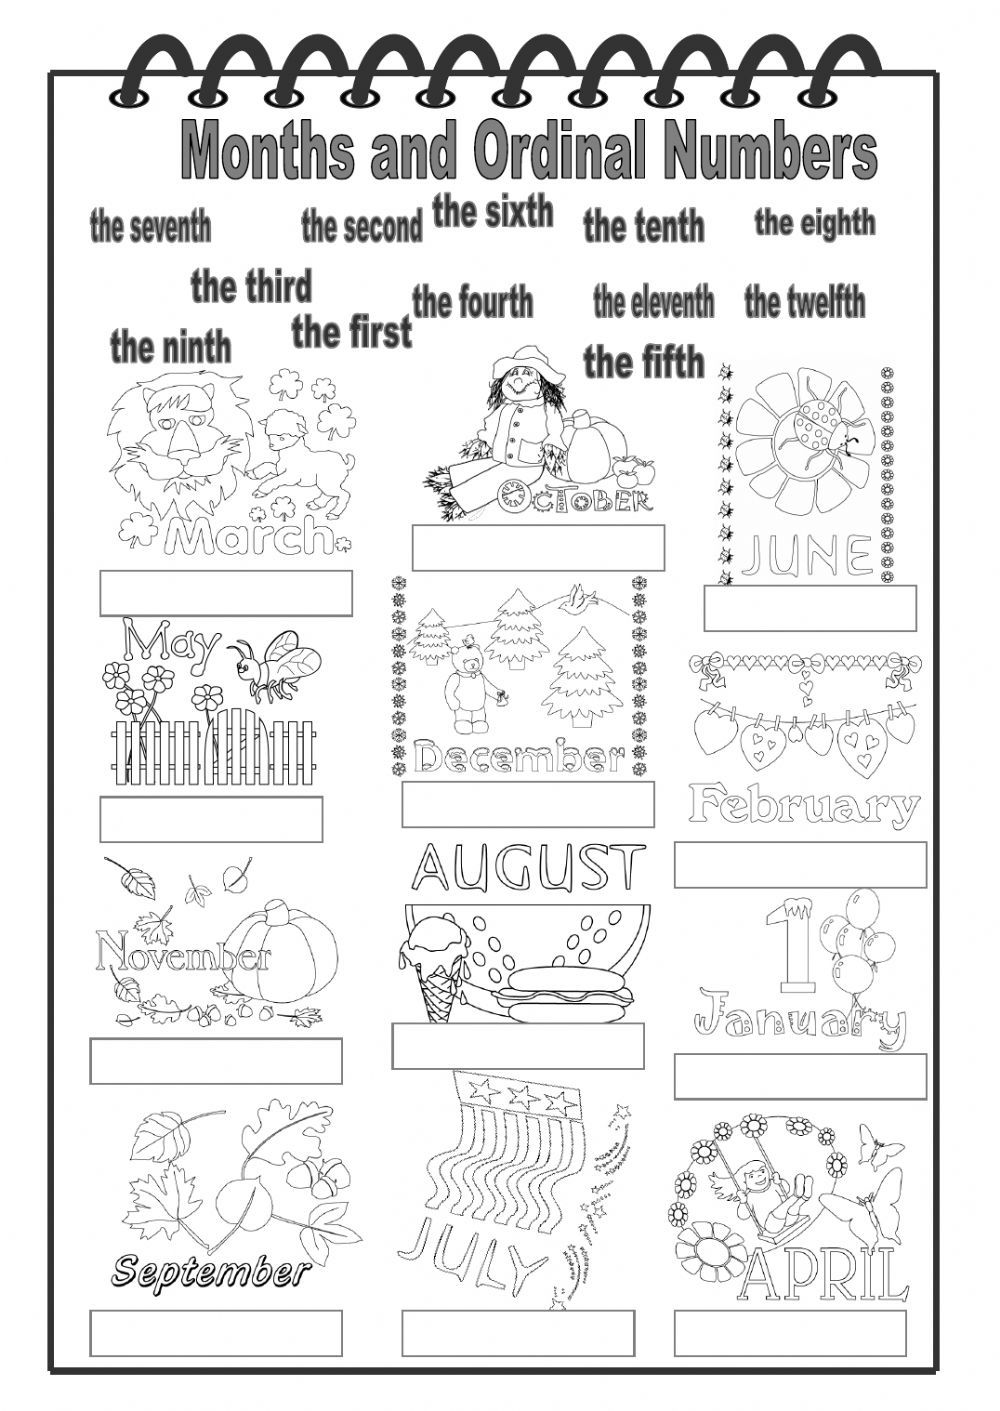 Ordinal numbers match up worksheet  print it out  Pinterest  To  worksheets for teachers, education, printable worksheets, and worksheets Ordinal Numbers Worksheet Ks1 1411 x 1000